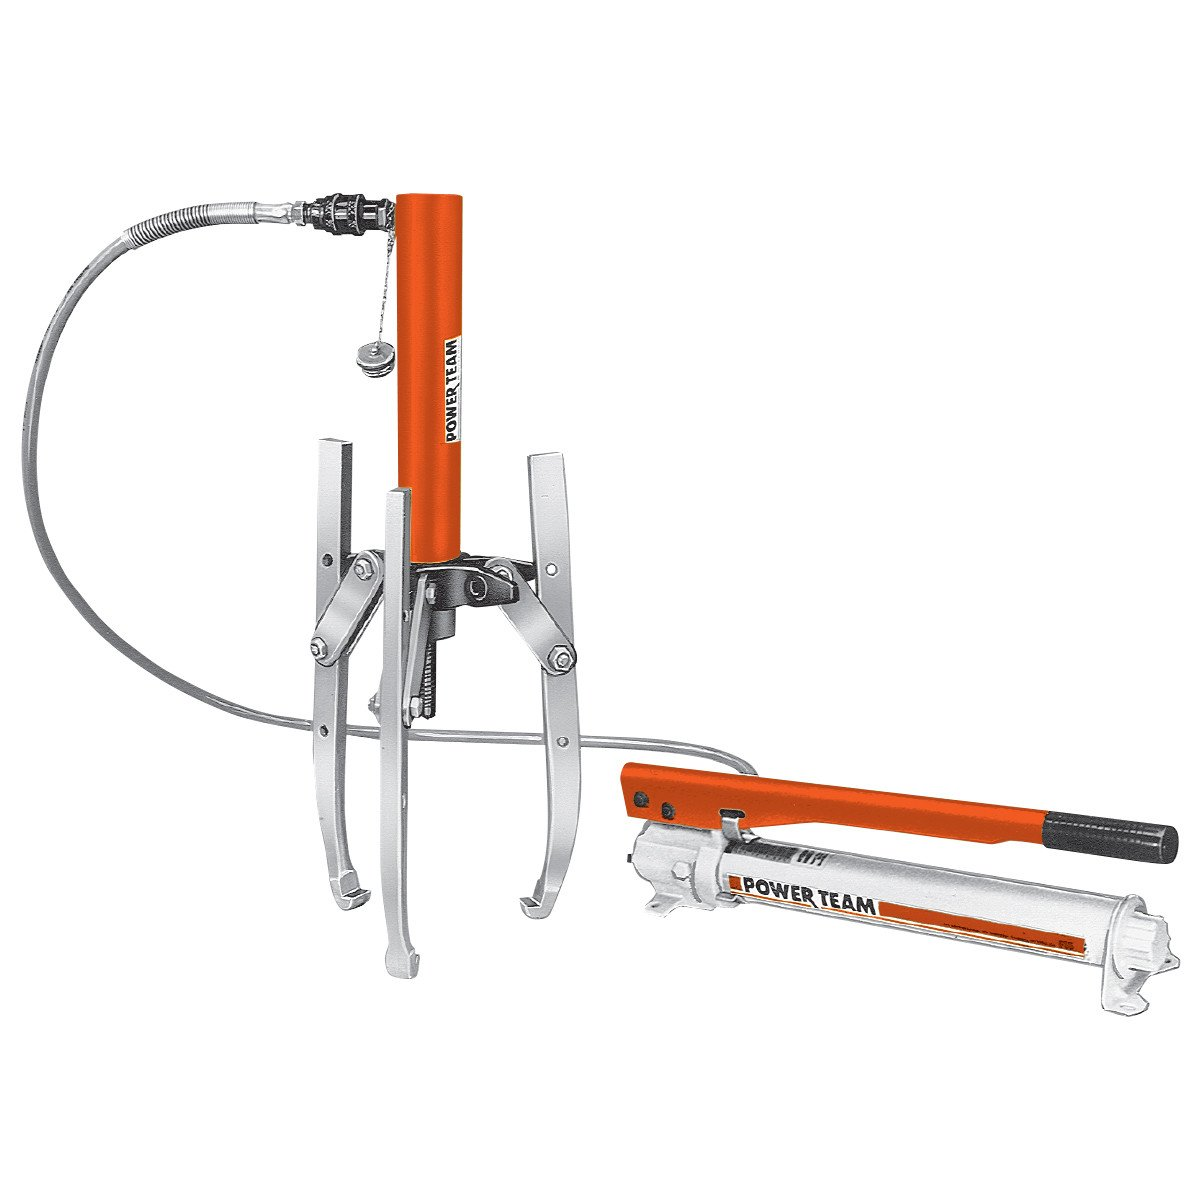 10 Ton Combination 2-jaw/3-jaw Hydraulic Puller Set